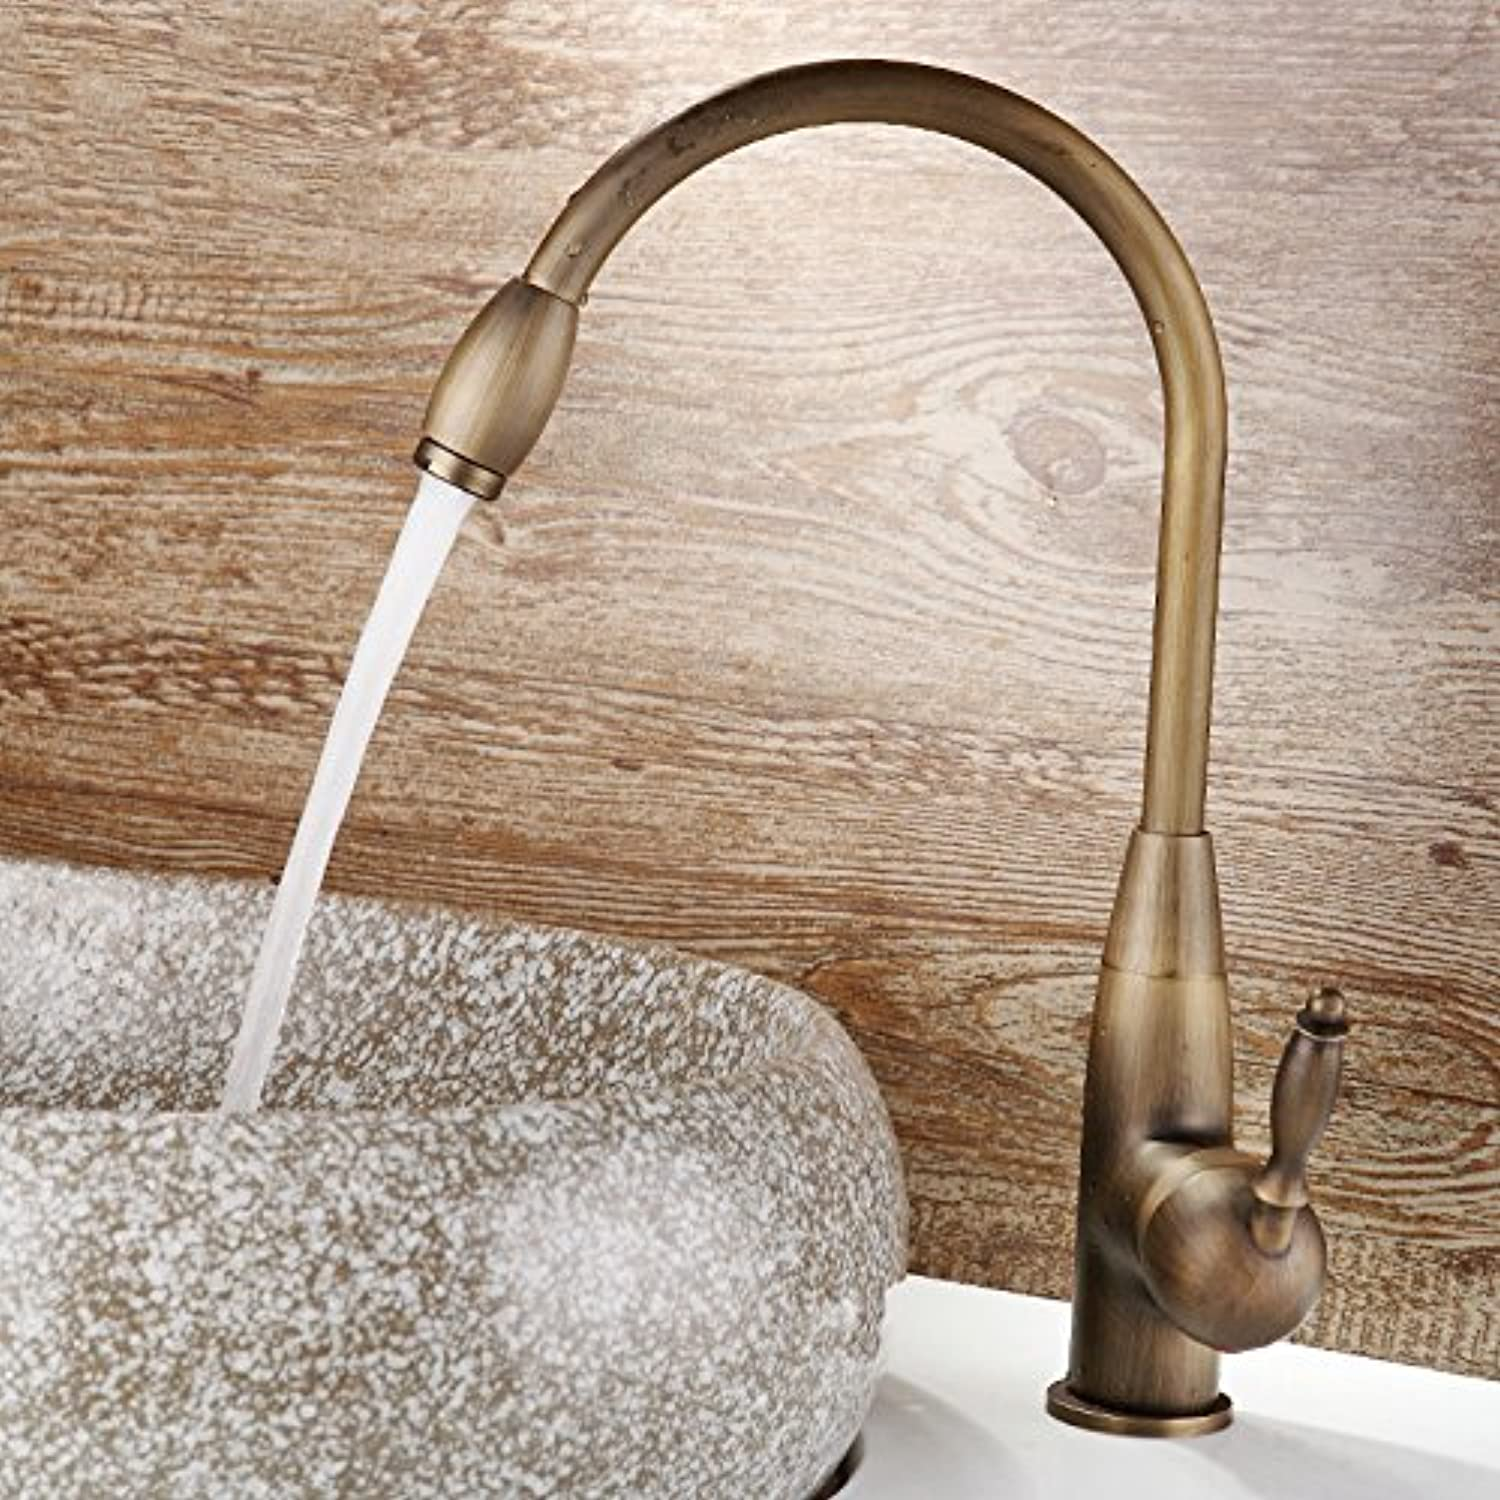 Faucat All Bronze Hot And Cold Imitation European Style Kitchen Faucet, Sink, Dish Basin Faucet,Nine Thousand And Sixty